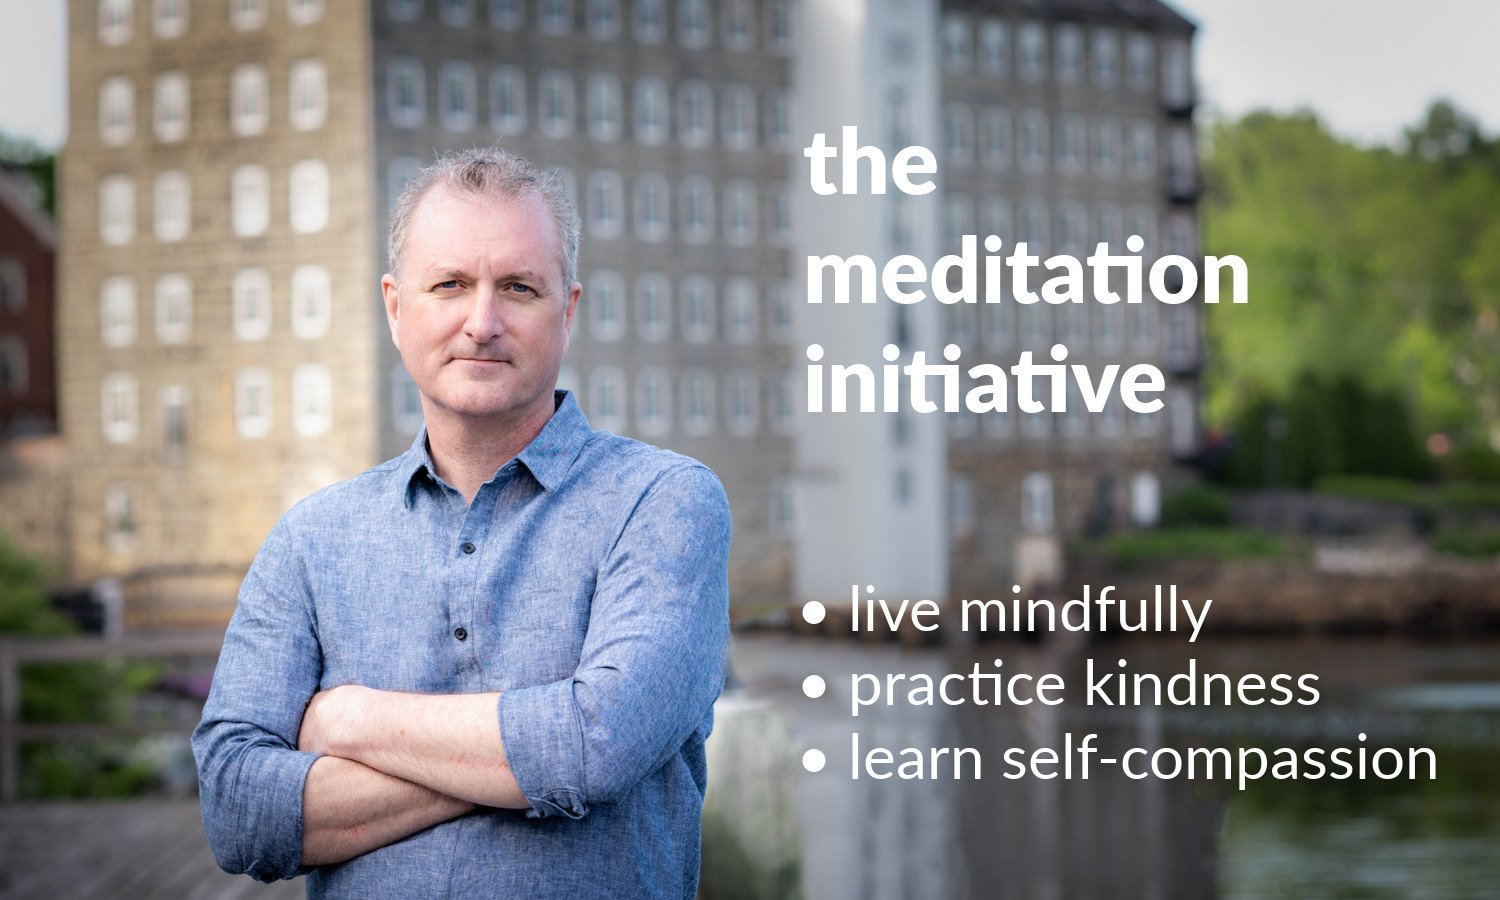 learn about wildmind's community-supported meditation initiative